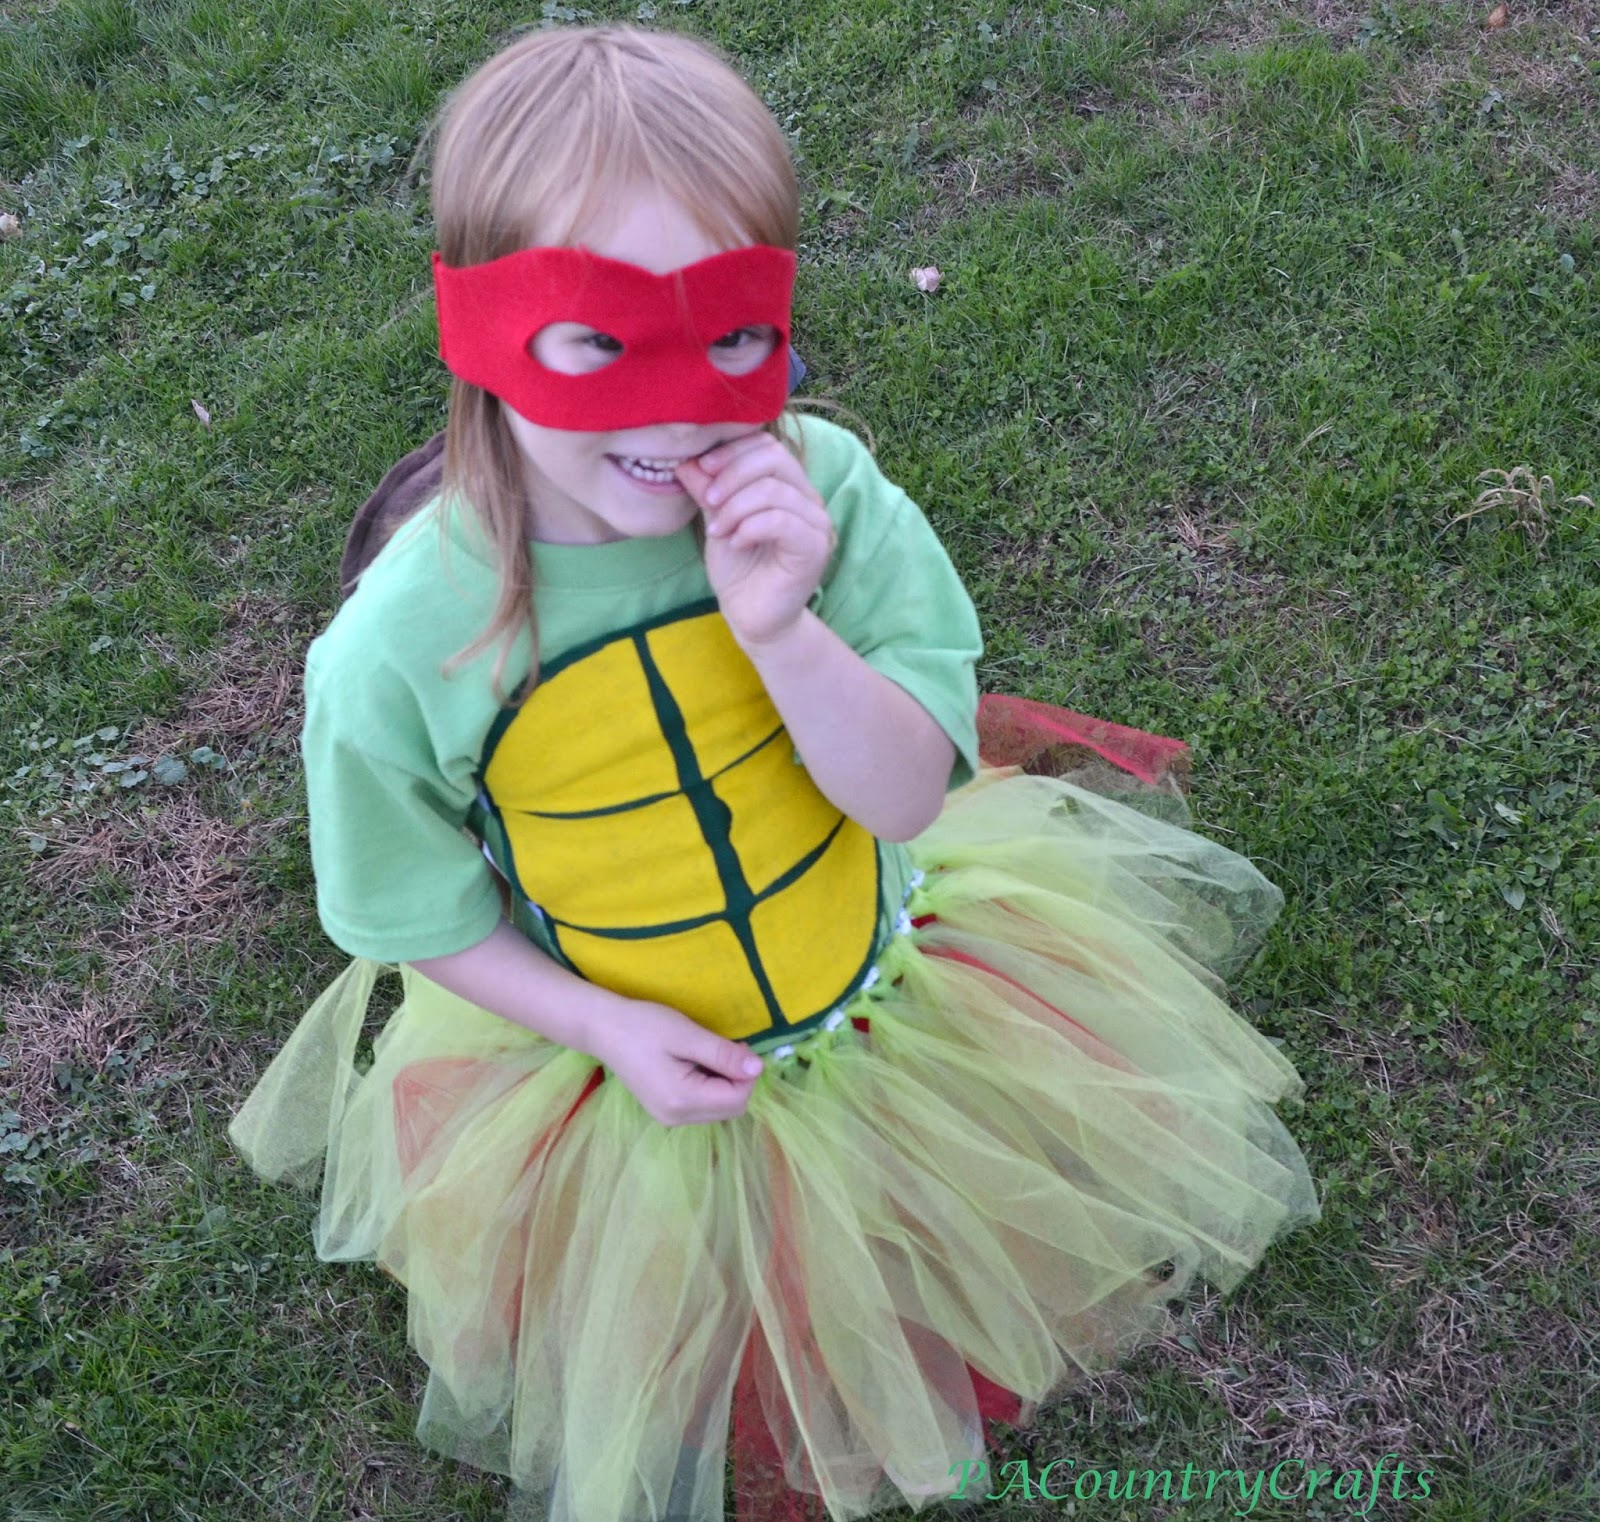 Diy girls ninja turtle costumes with tutus pa country crafts diy girls ninja turtle costumes with tutus november 4 2013 posted in costumes fall halloween kids crafts sewing solutioingenieria Gallery